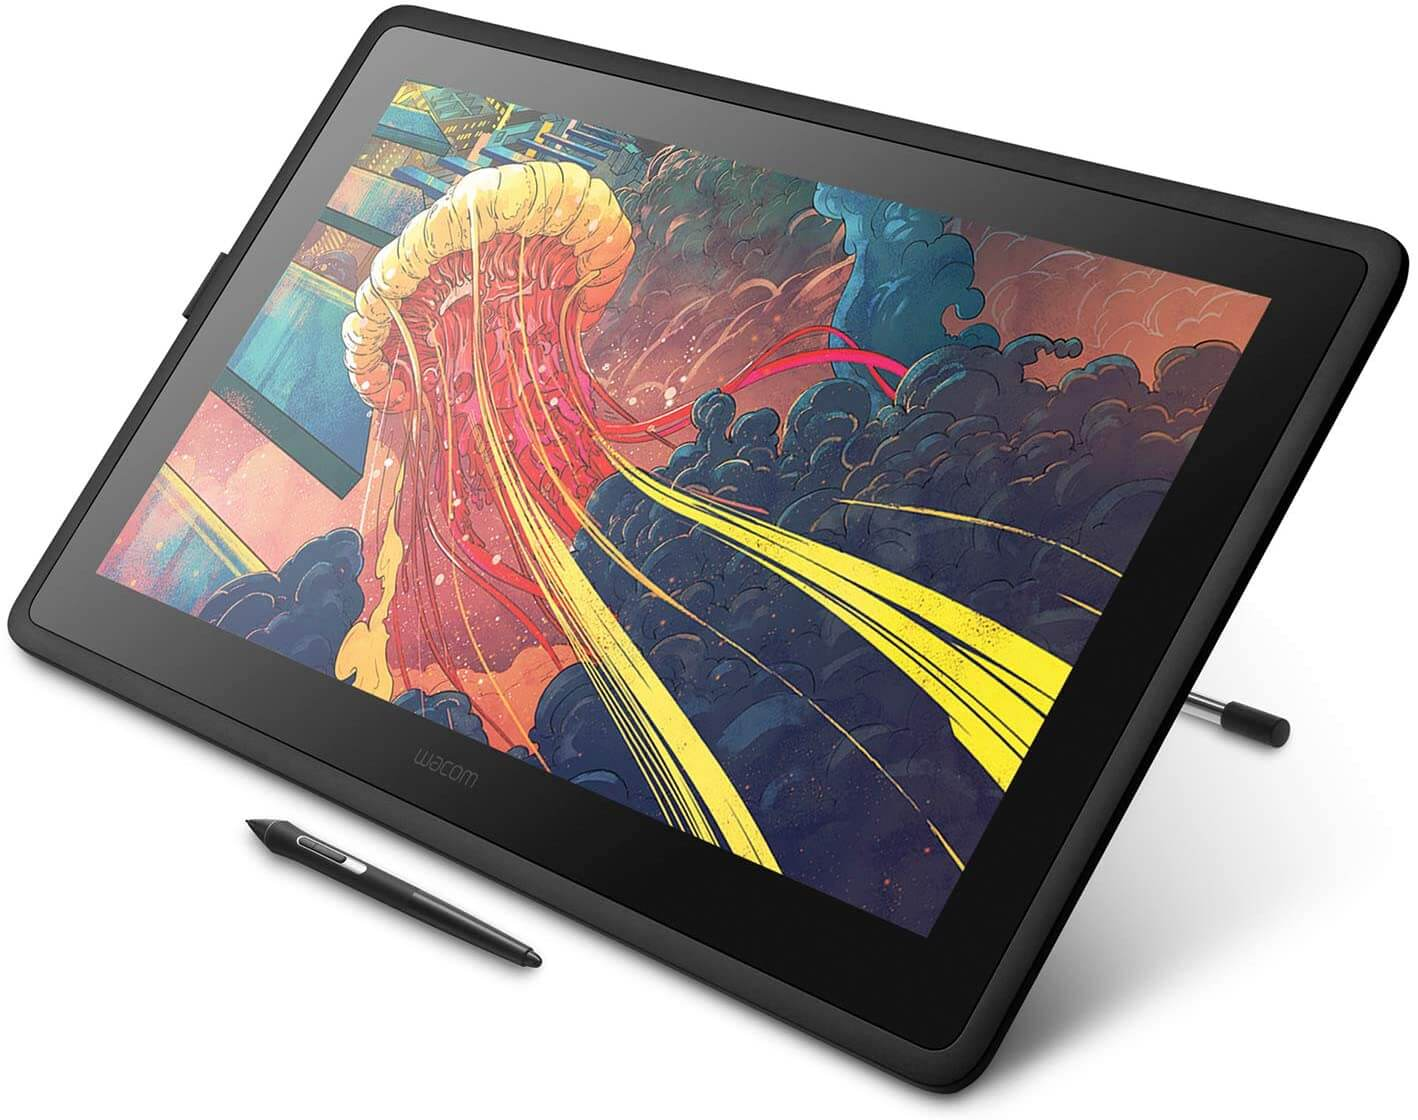 Wacom Cintiq 22 – Best Drawing Tablet For Graphic Design